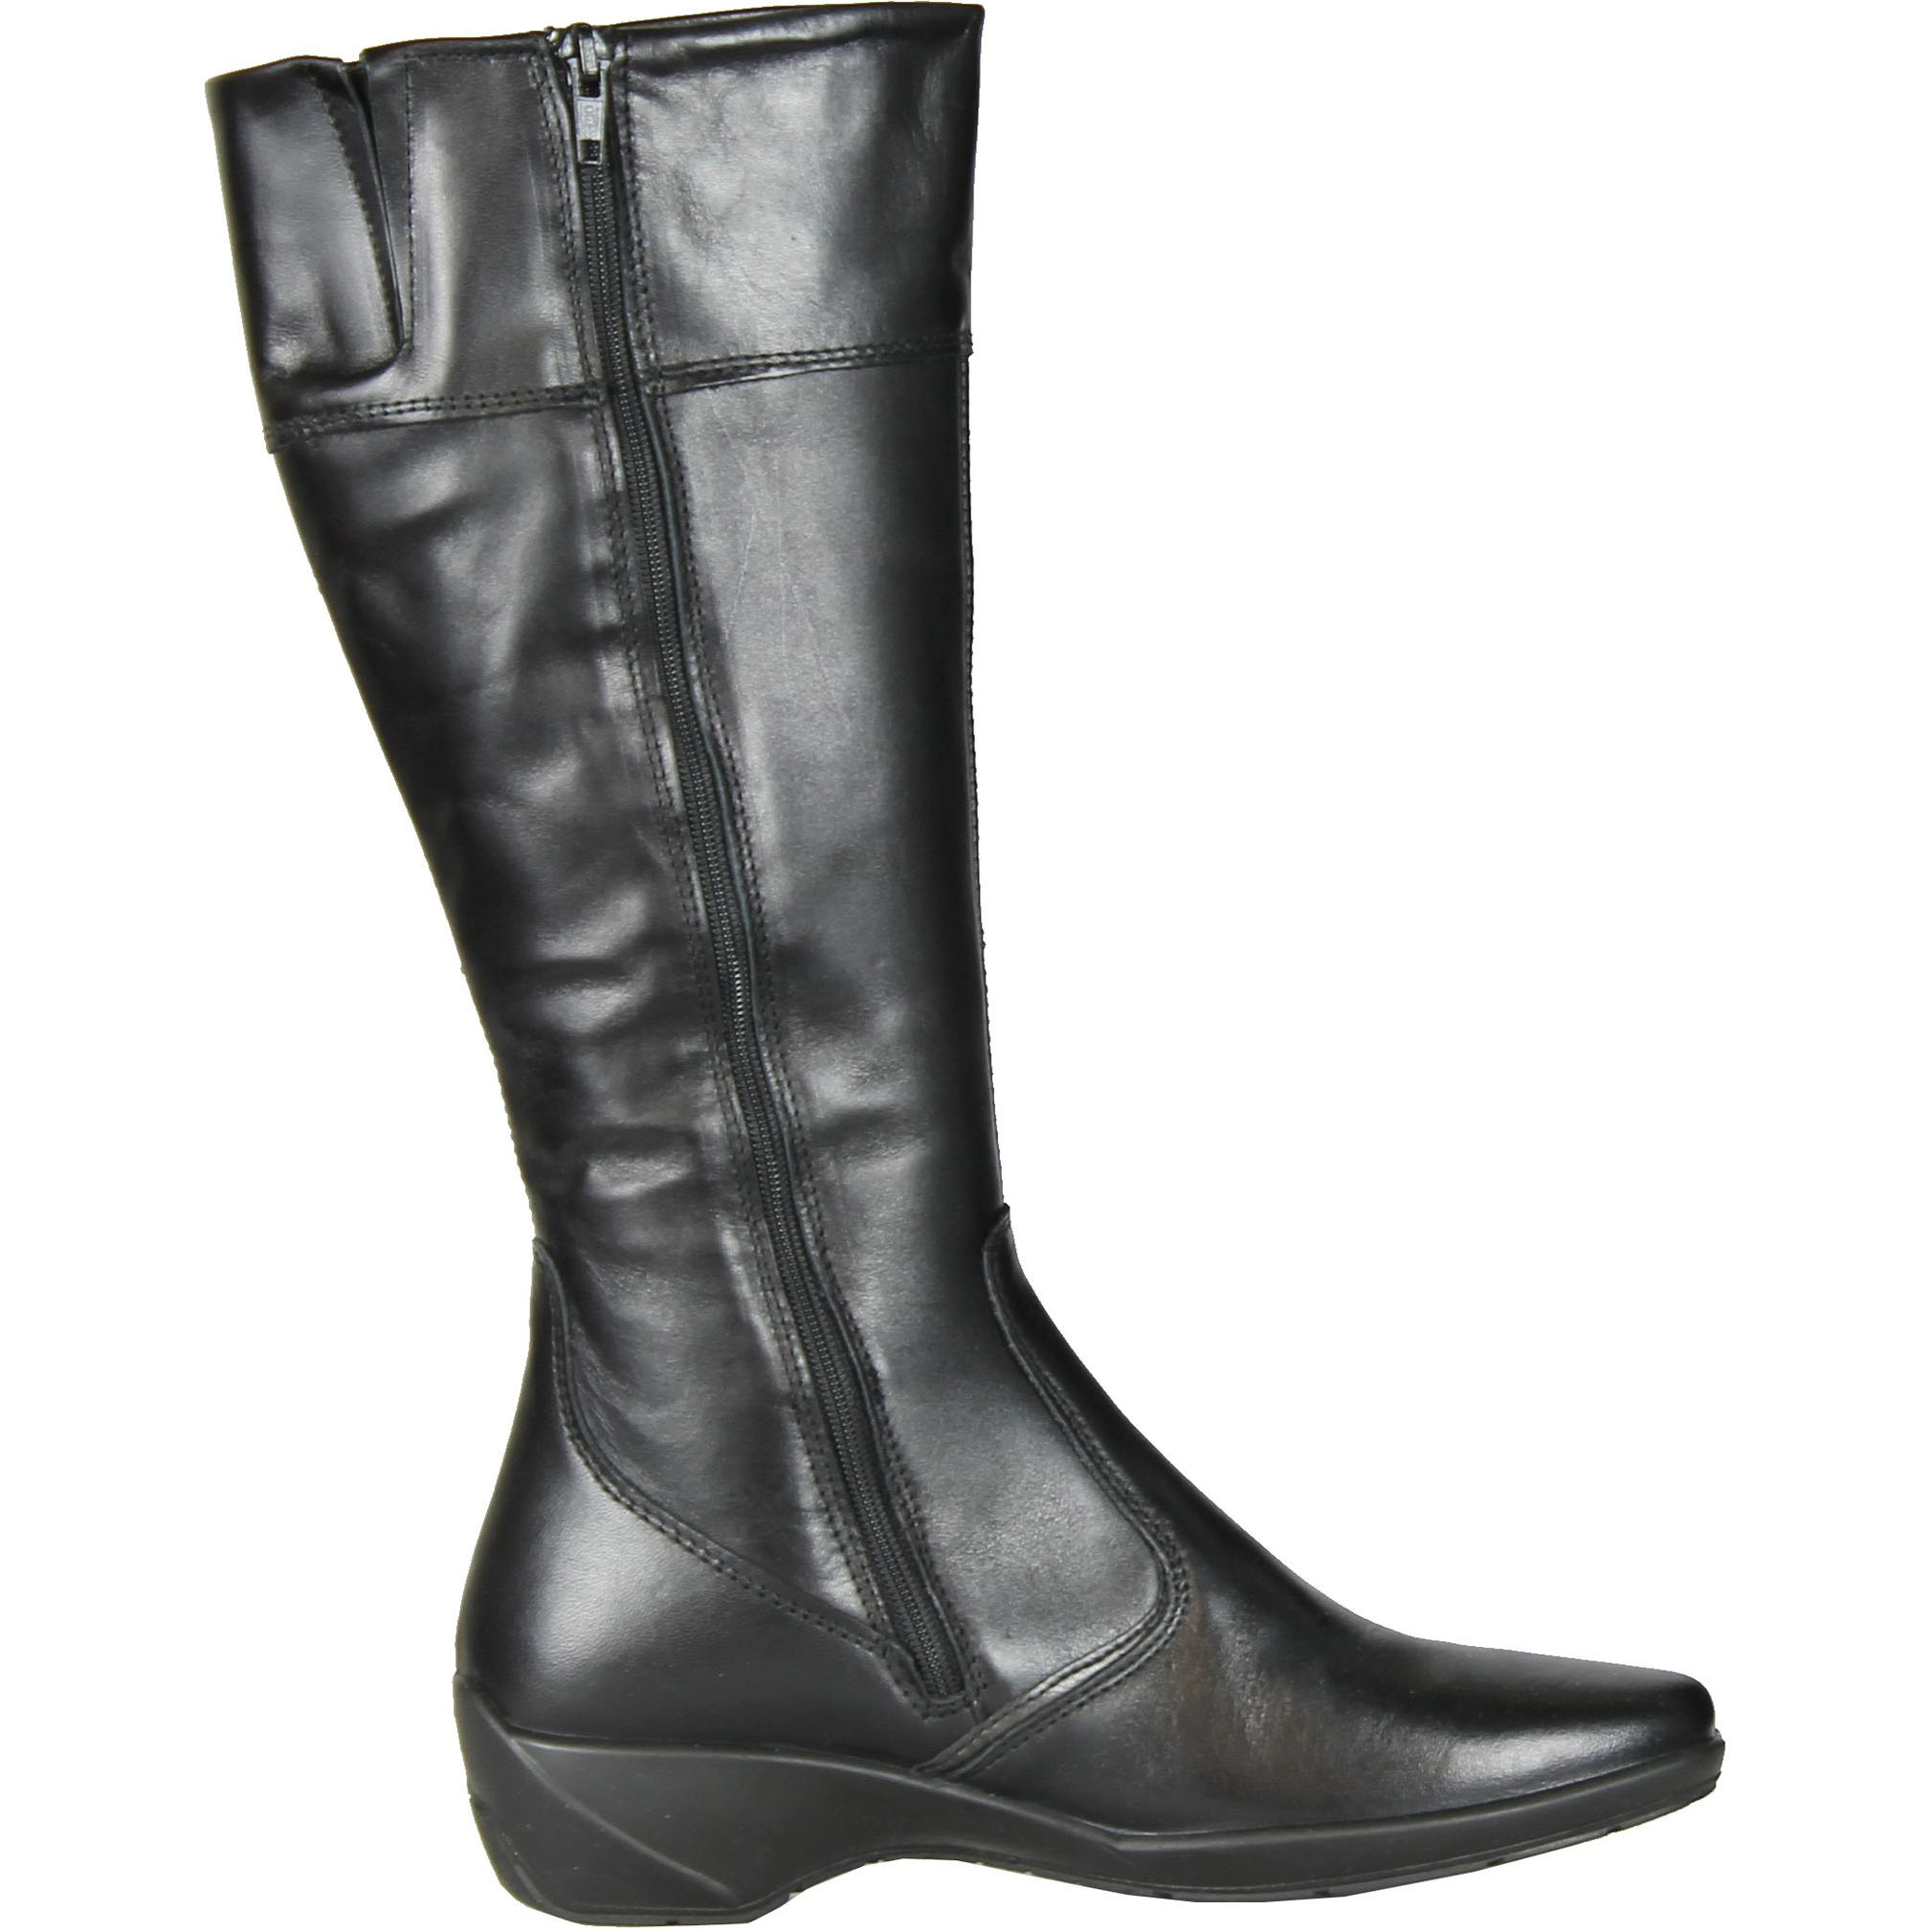 IMAC Womens 52368 Fashion Leather Boots Made In Italy, Black., 36